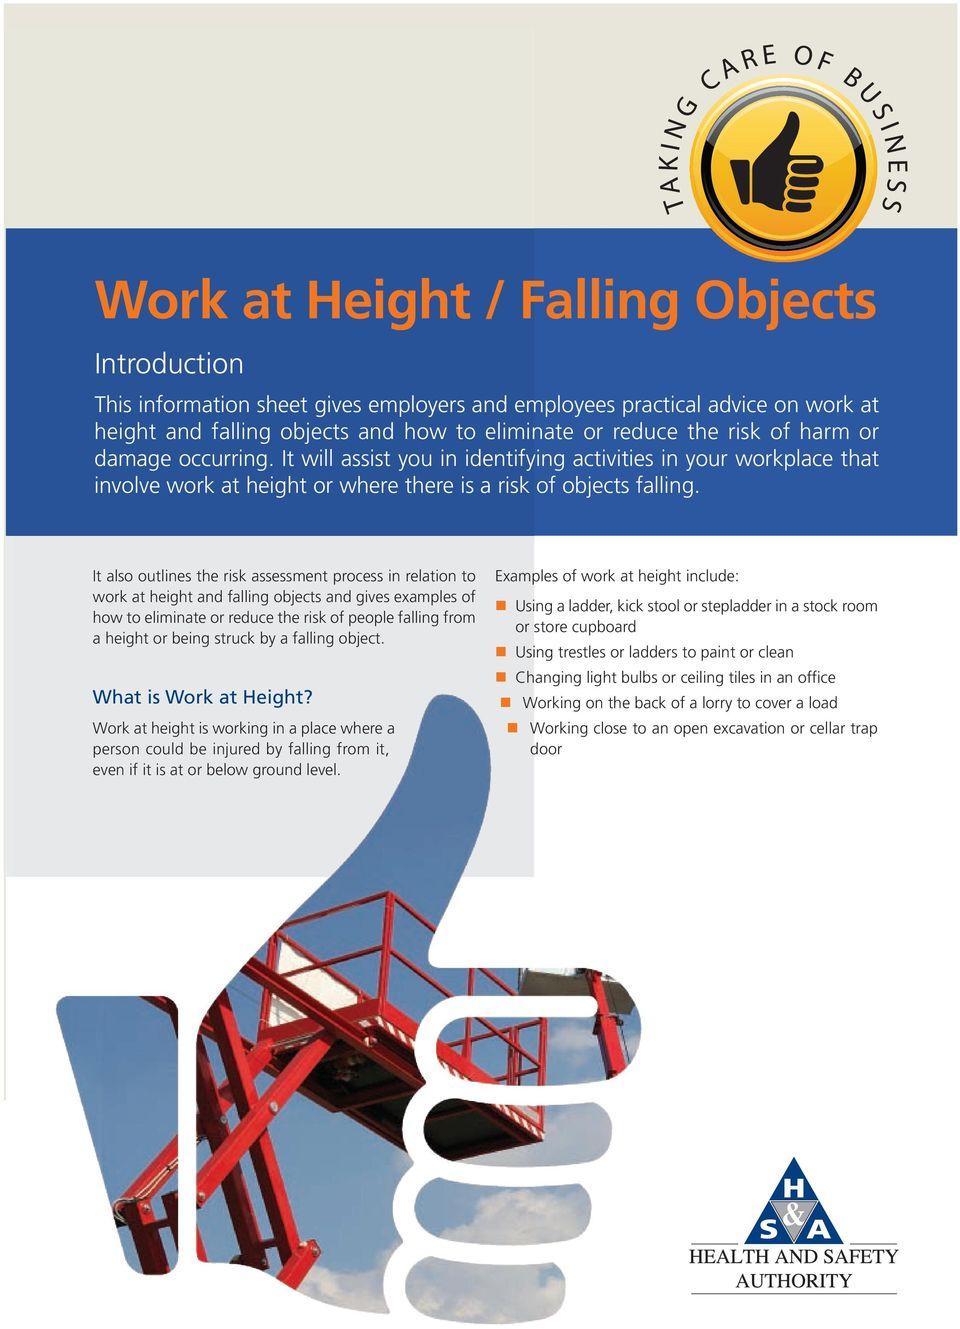 It also outlines the risk assessment process in relation to work at height and falling objects and gives examples of how to eliminate or reduce the risk of people falling from a height or being